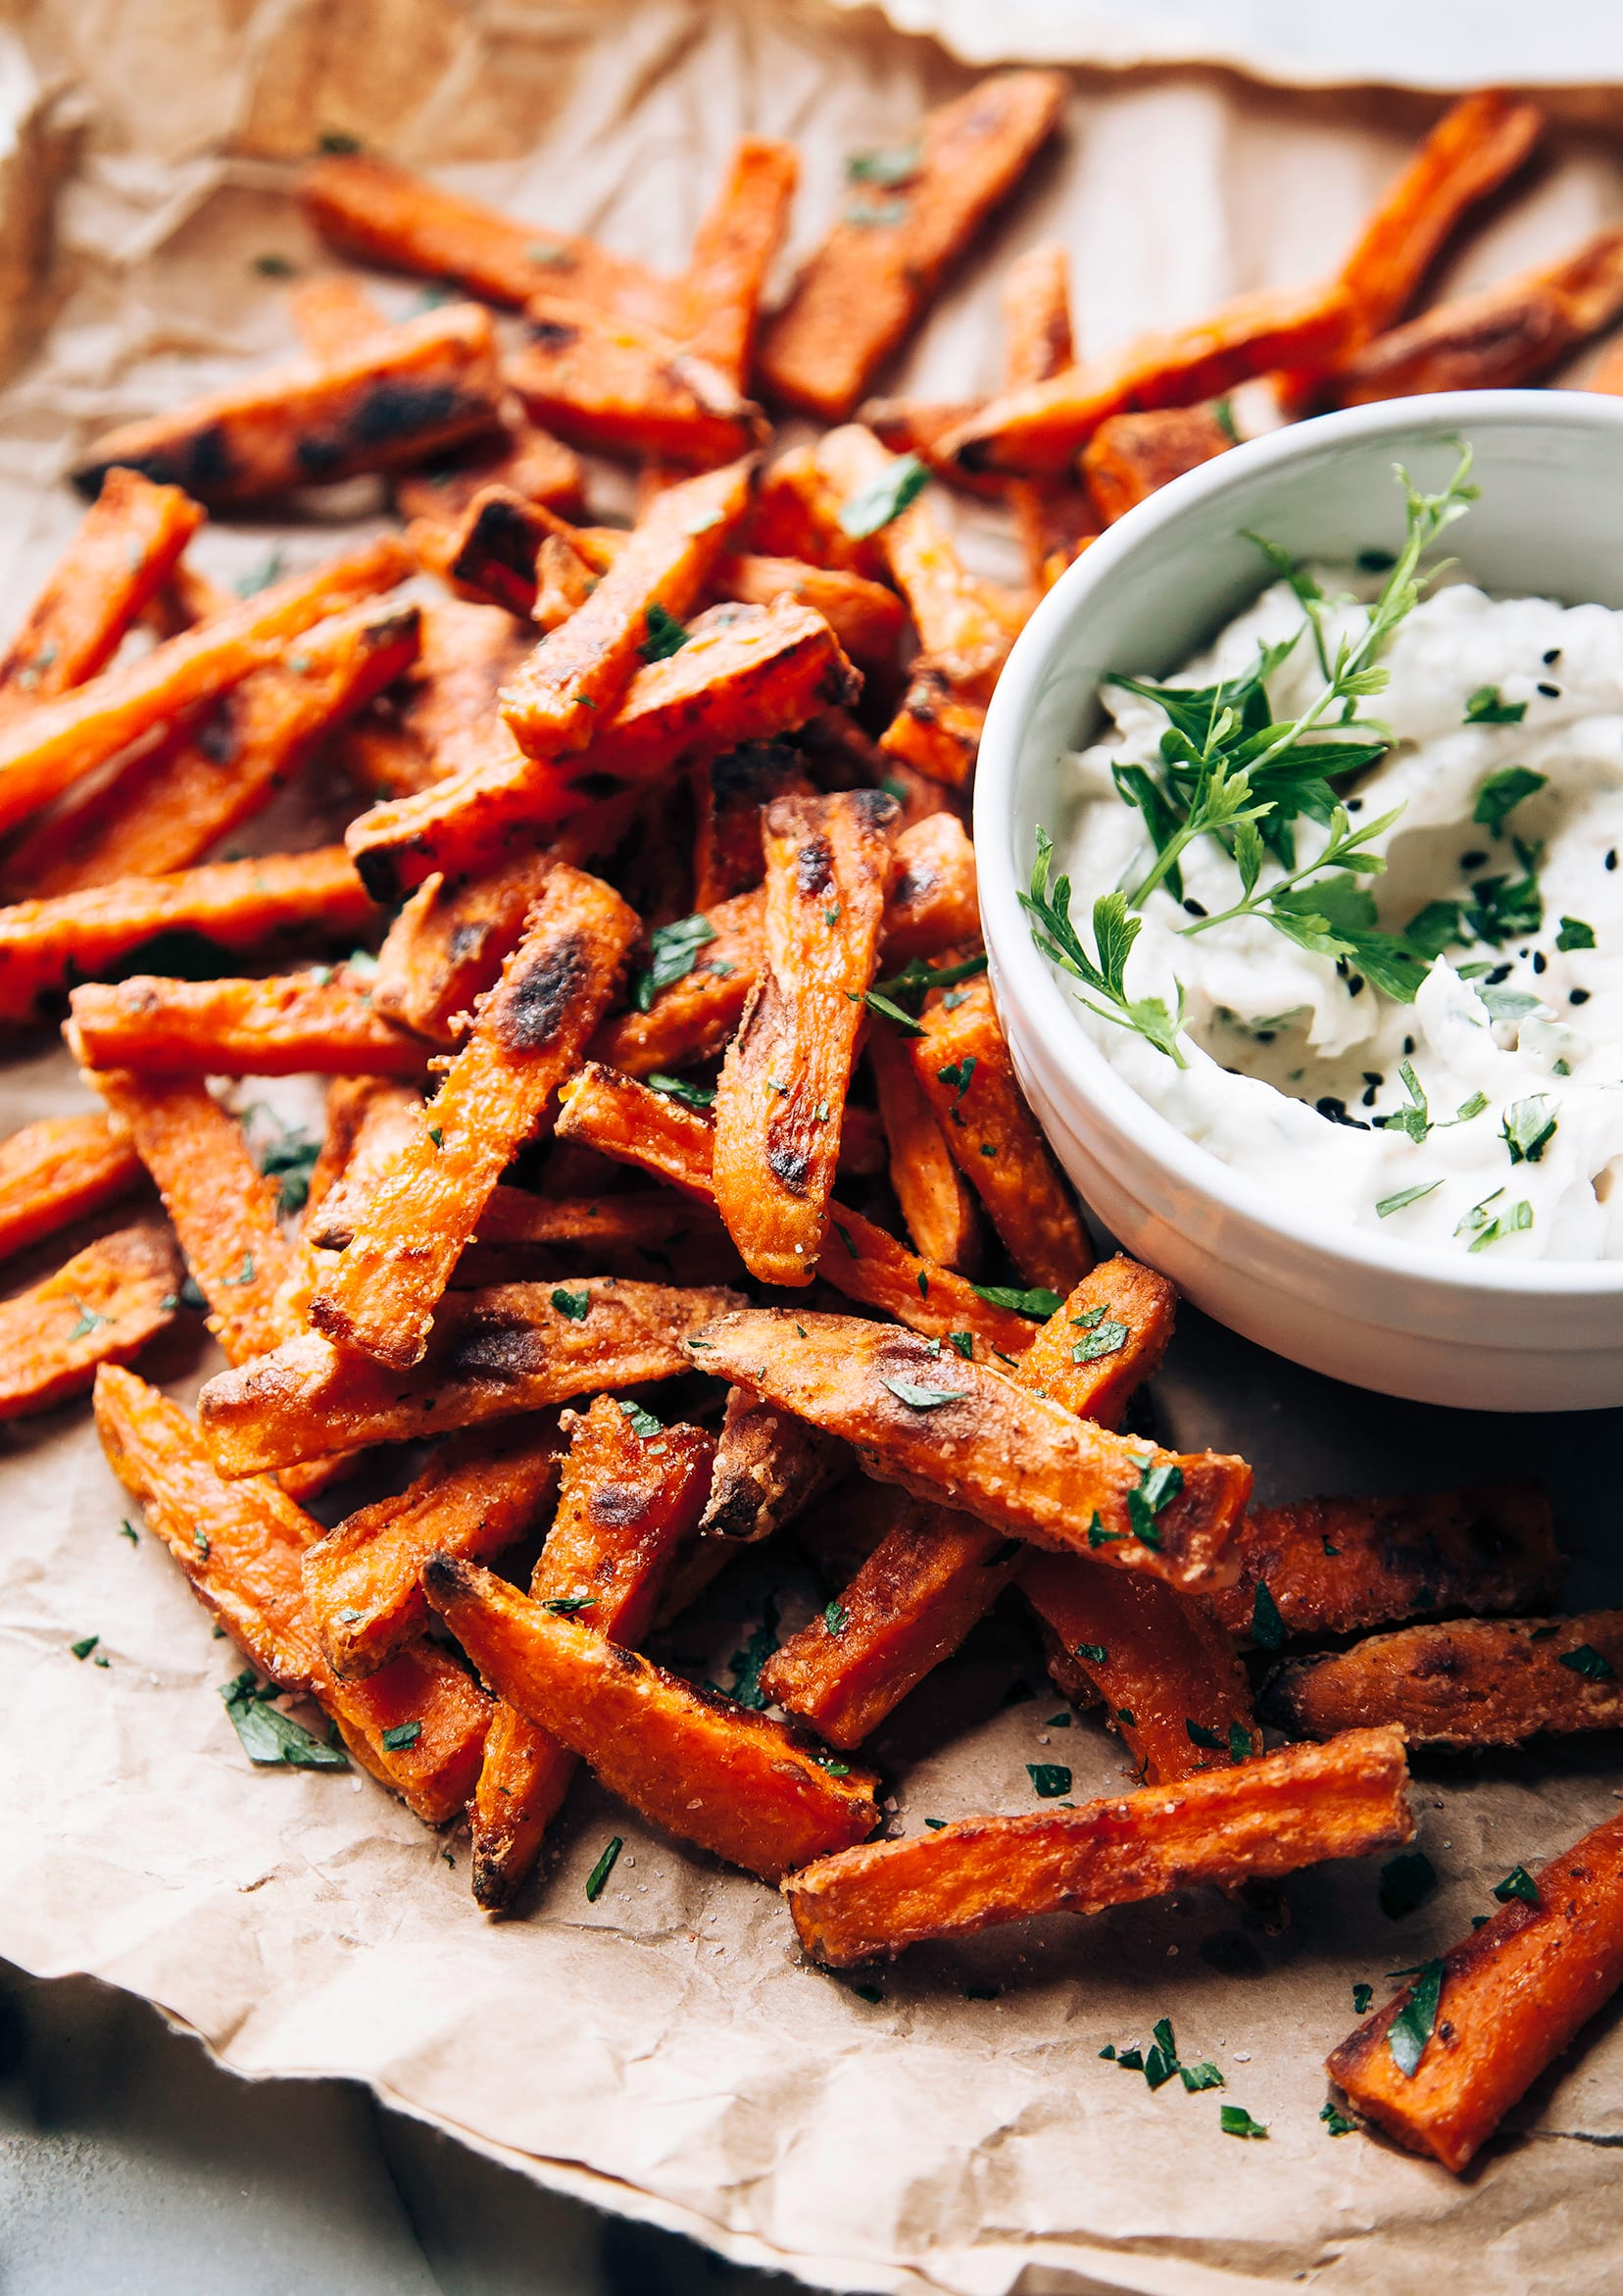 LEGITIMATELY CRISPY BAKED SWEET POTATO FRIES - The First Mess